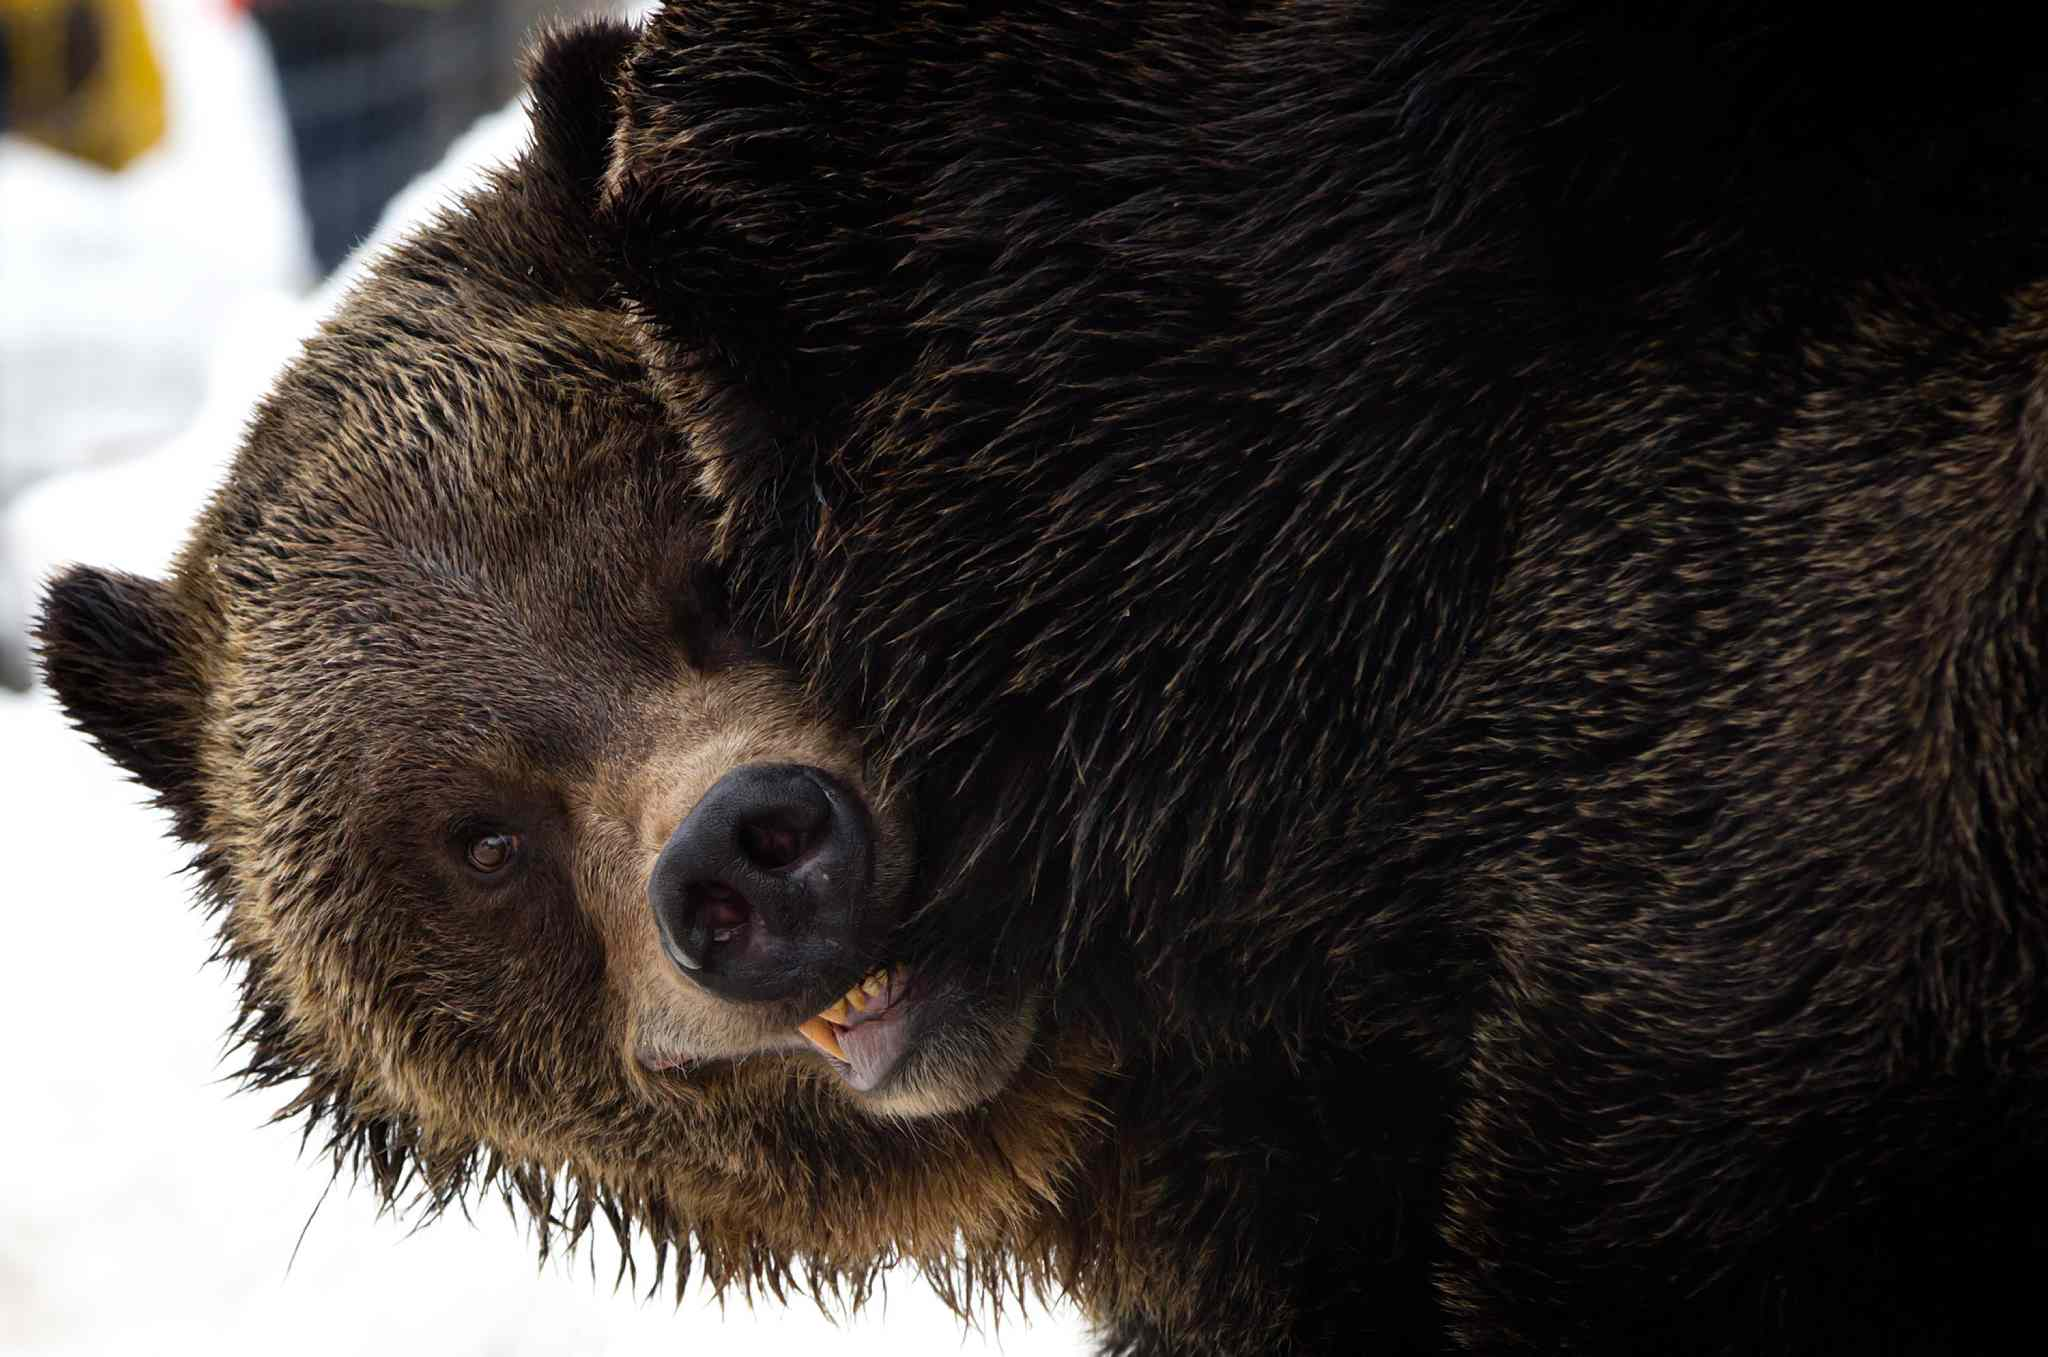 3. All bears, including polar, grizzly (pictured), brown and black bear.